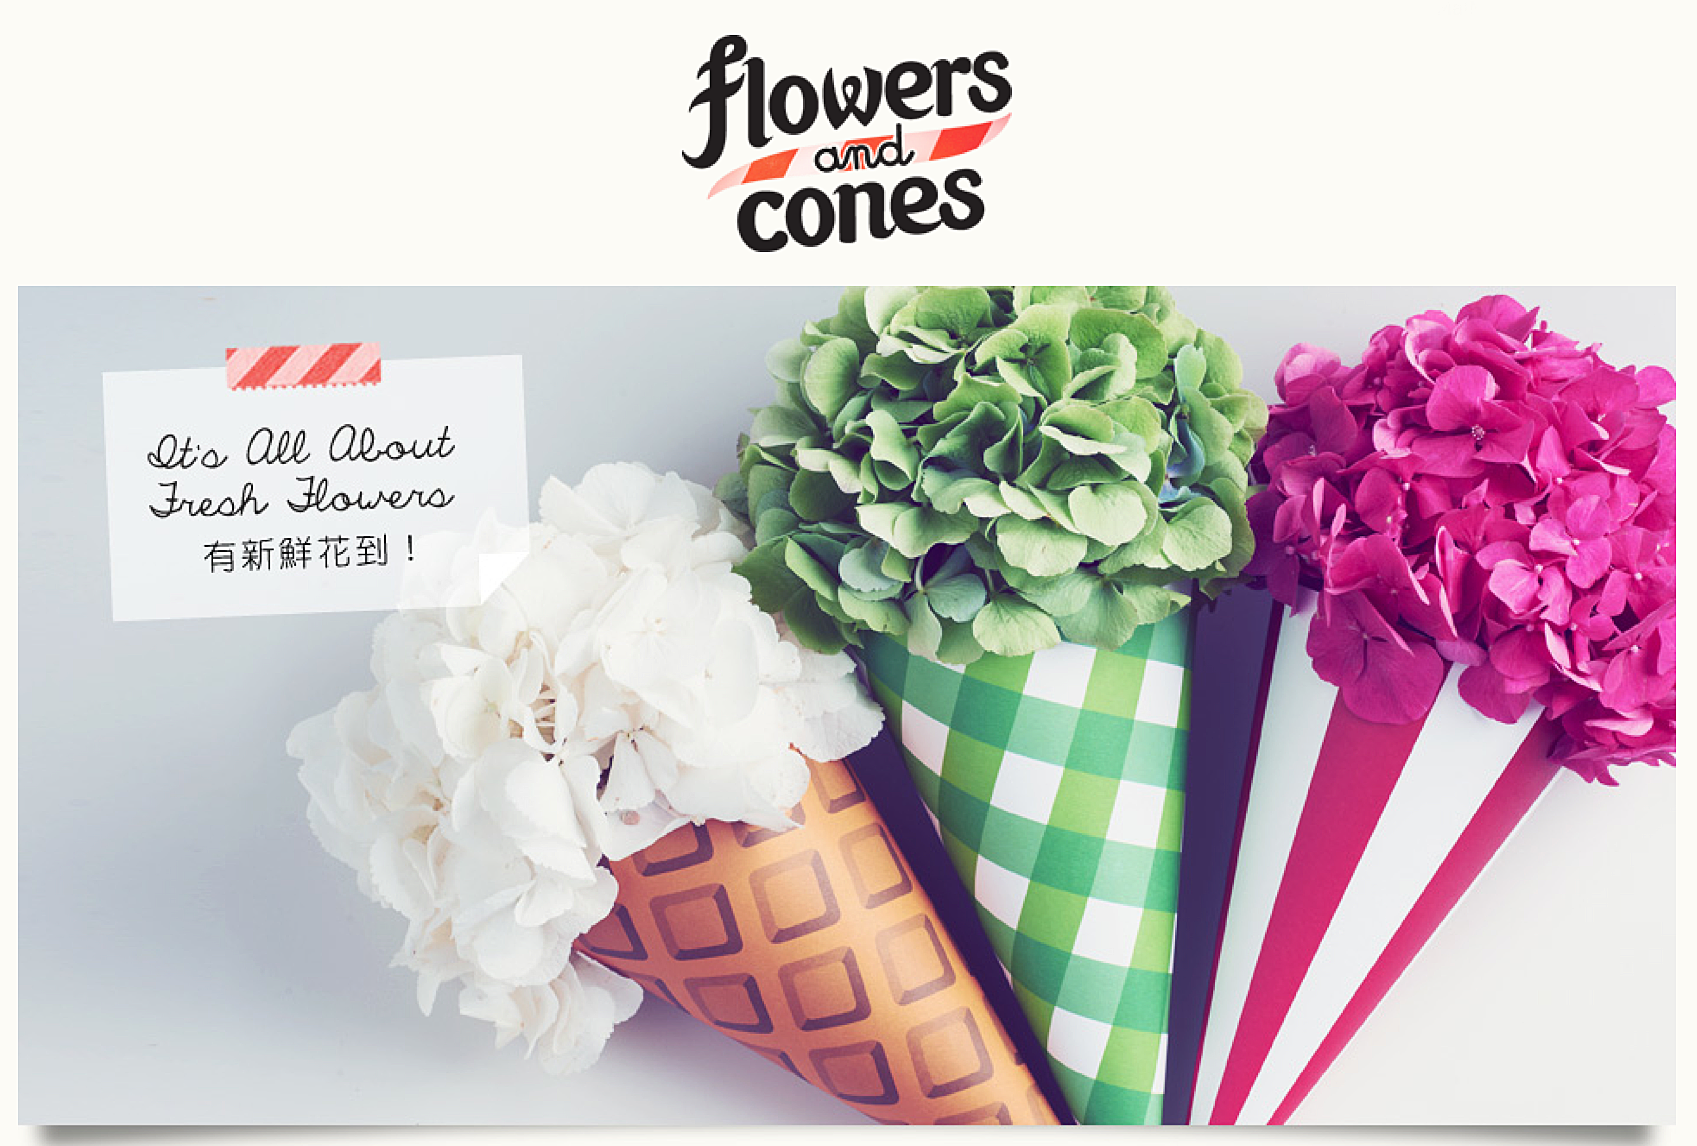 Flowers cones advertisement